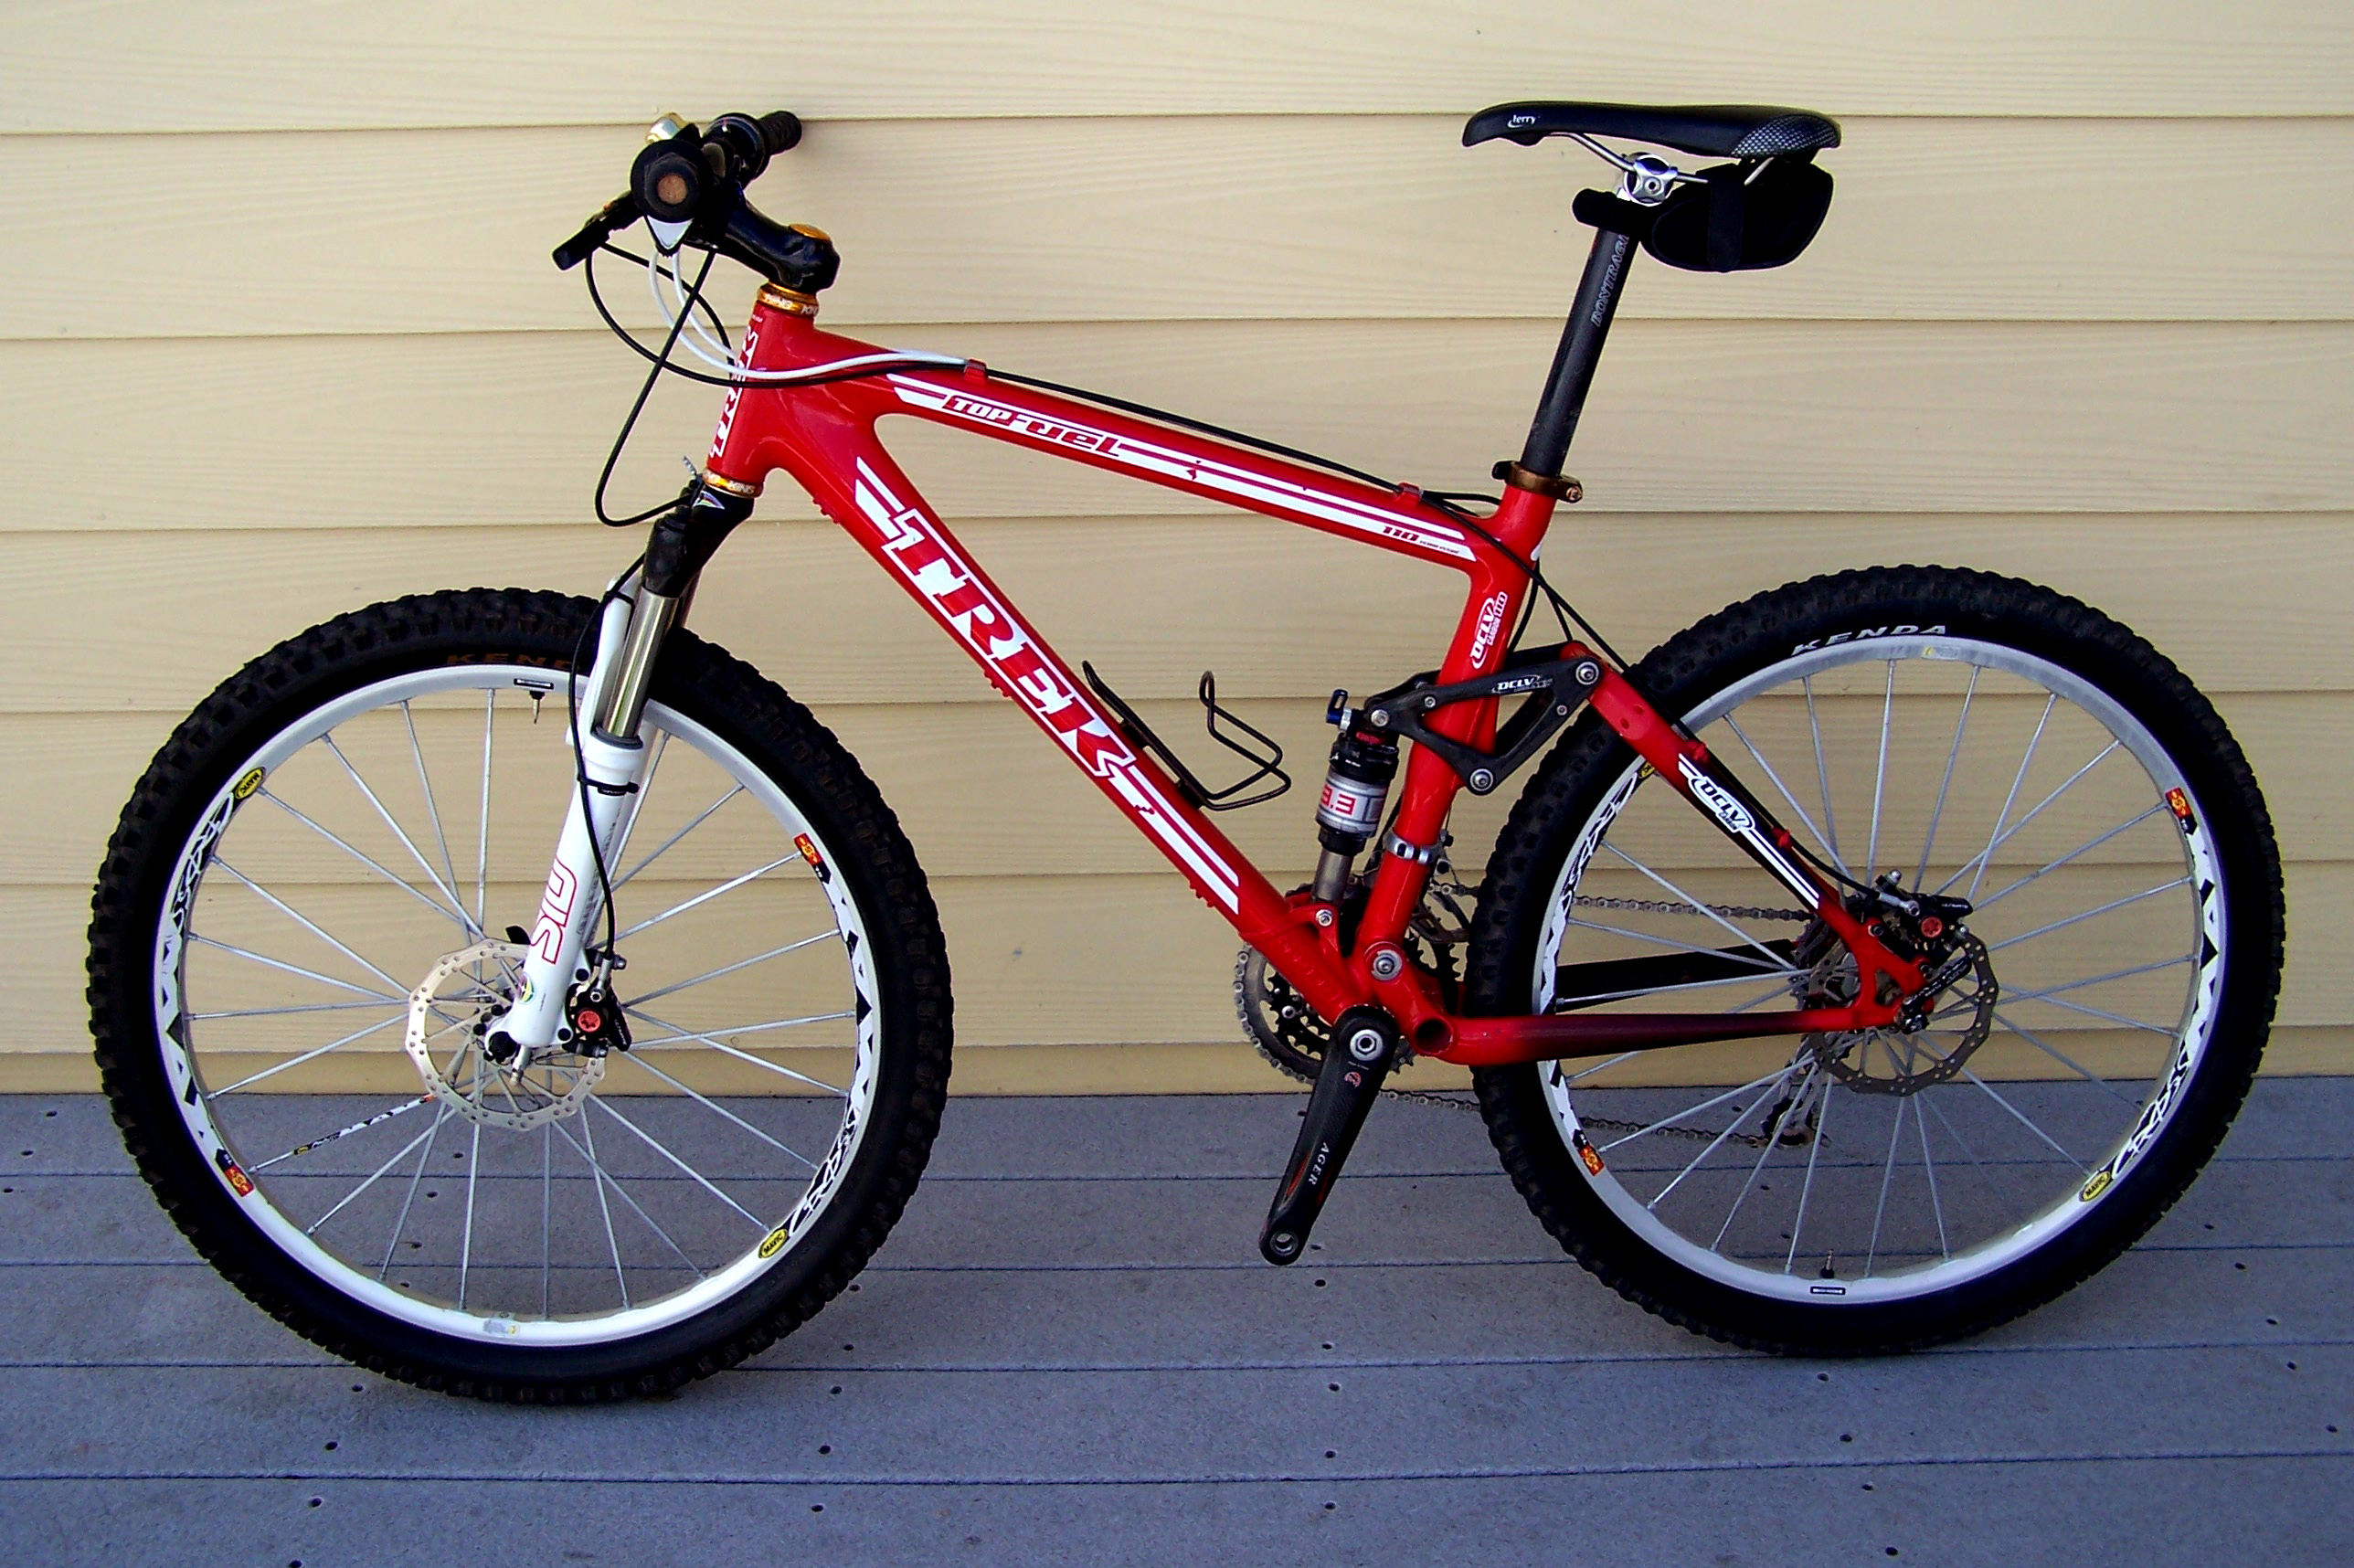 Trek Team Edition 110 Top Fuel Carbon Fiber Mountain Bike For Sale